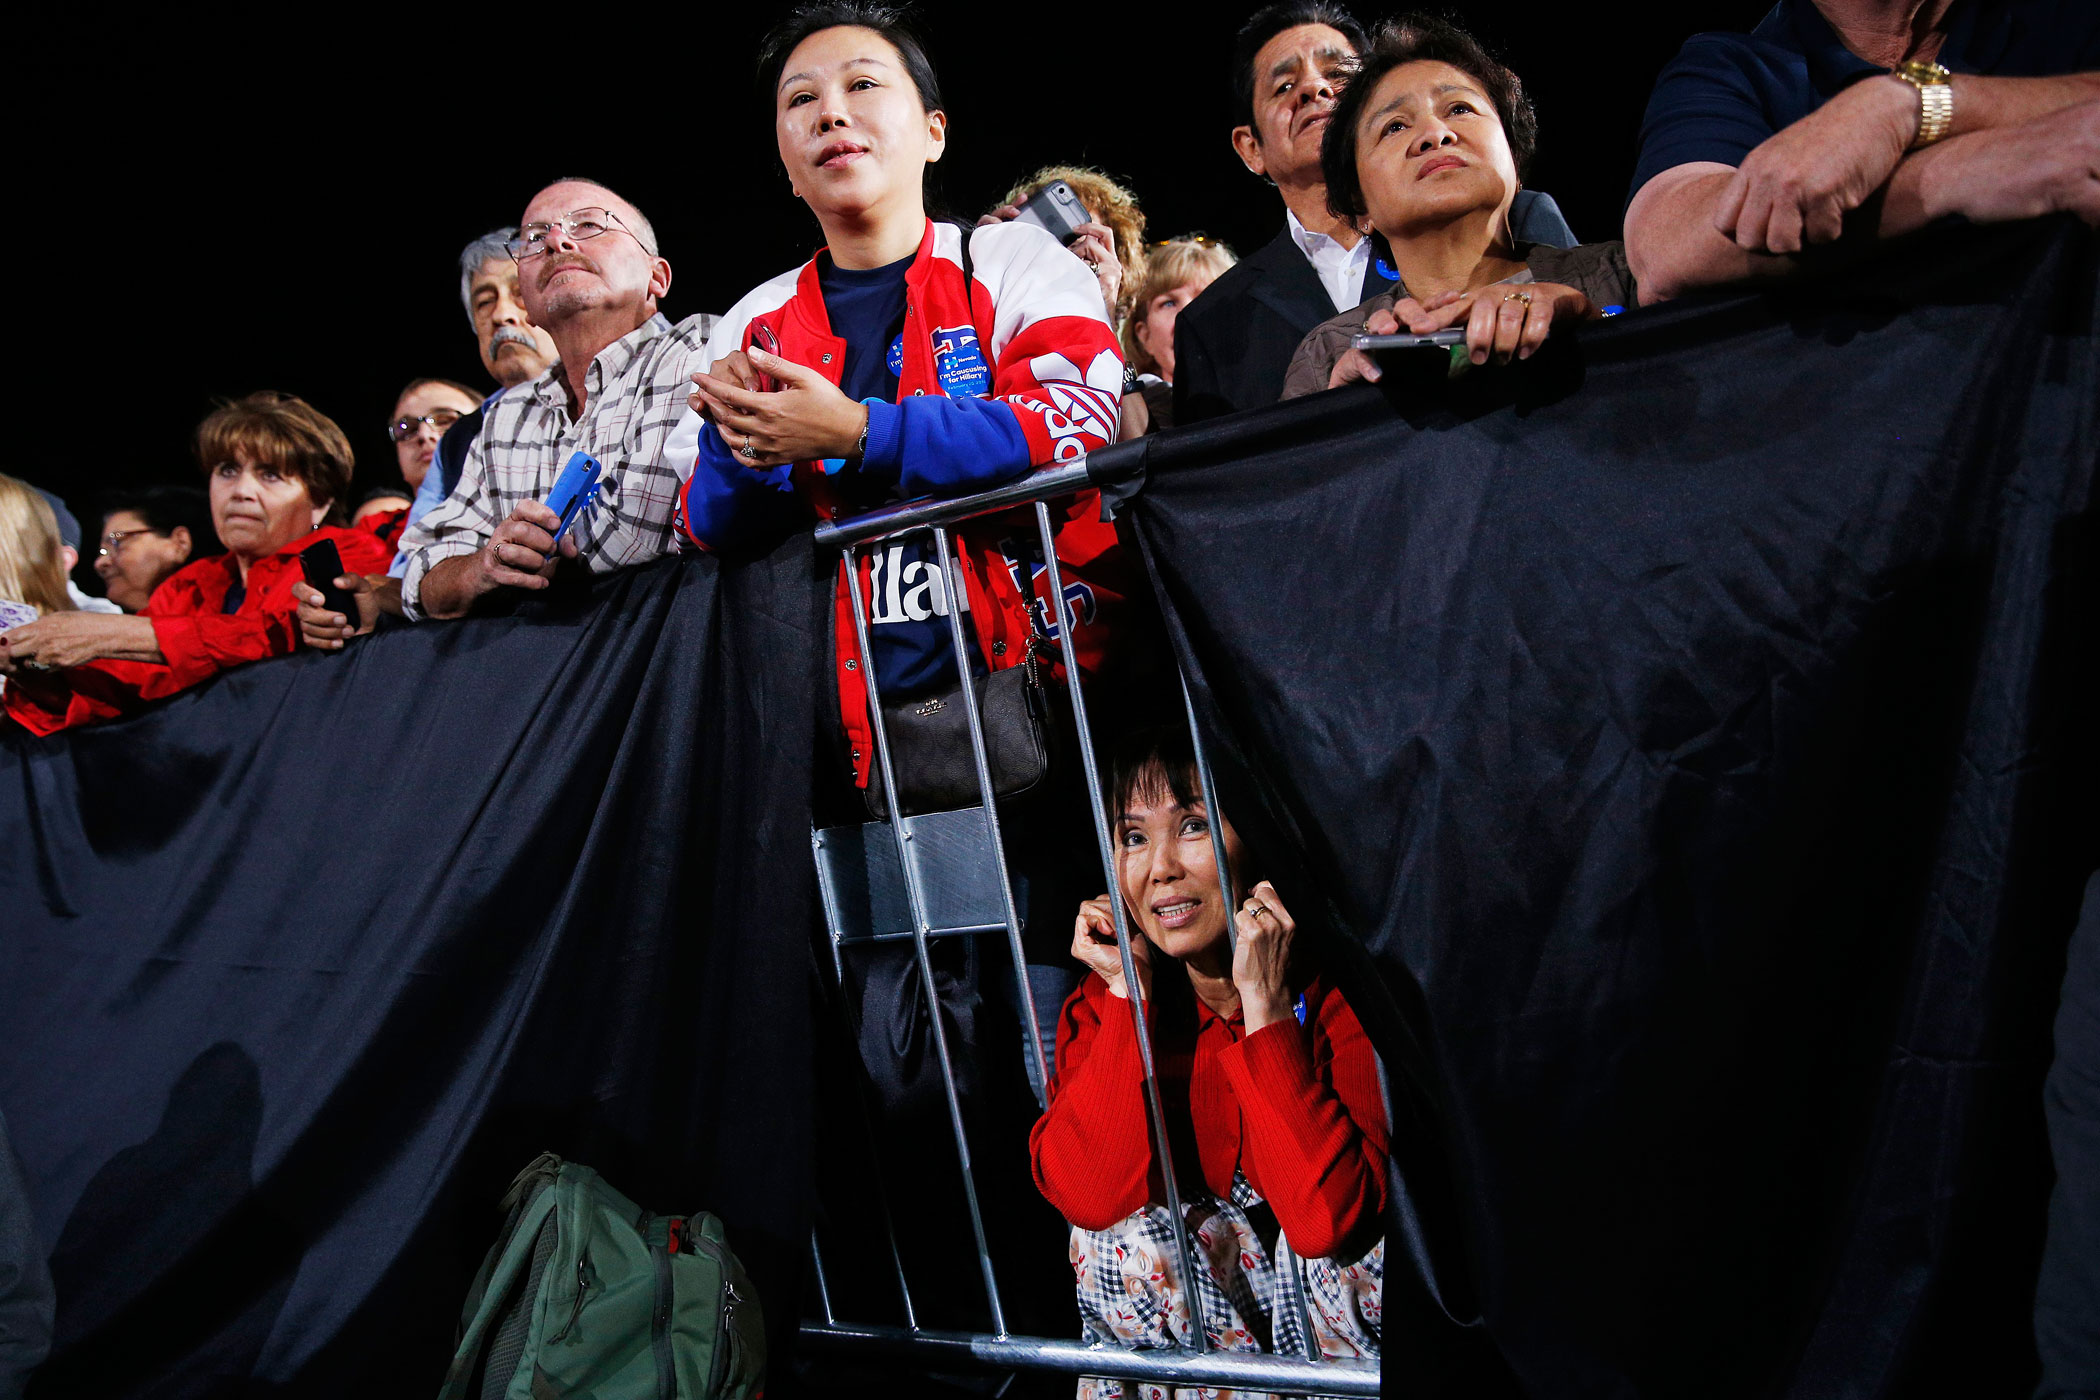 Supporters watch Hillary Clinton speak during a rally on Feb. 19, 2016, in Las Vegas.